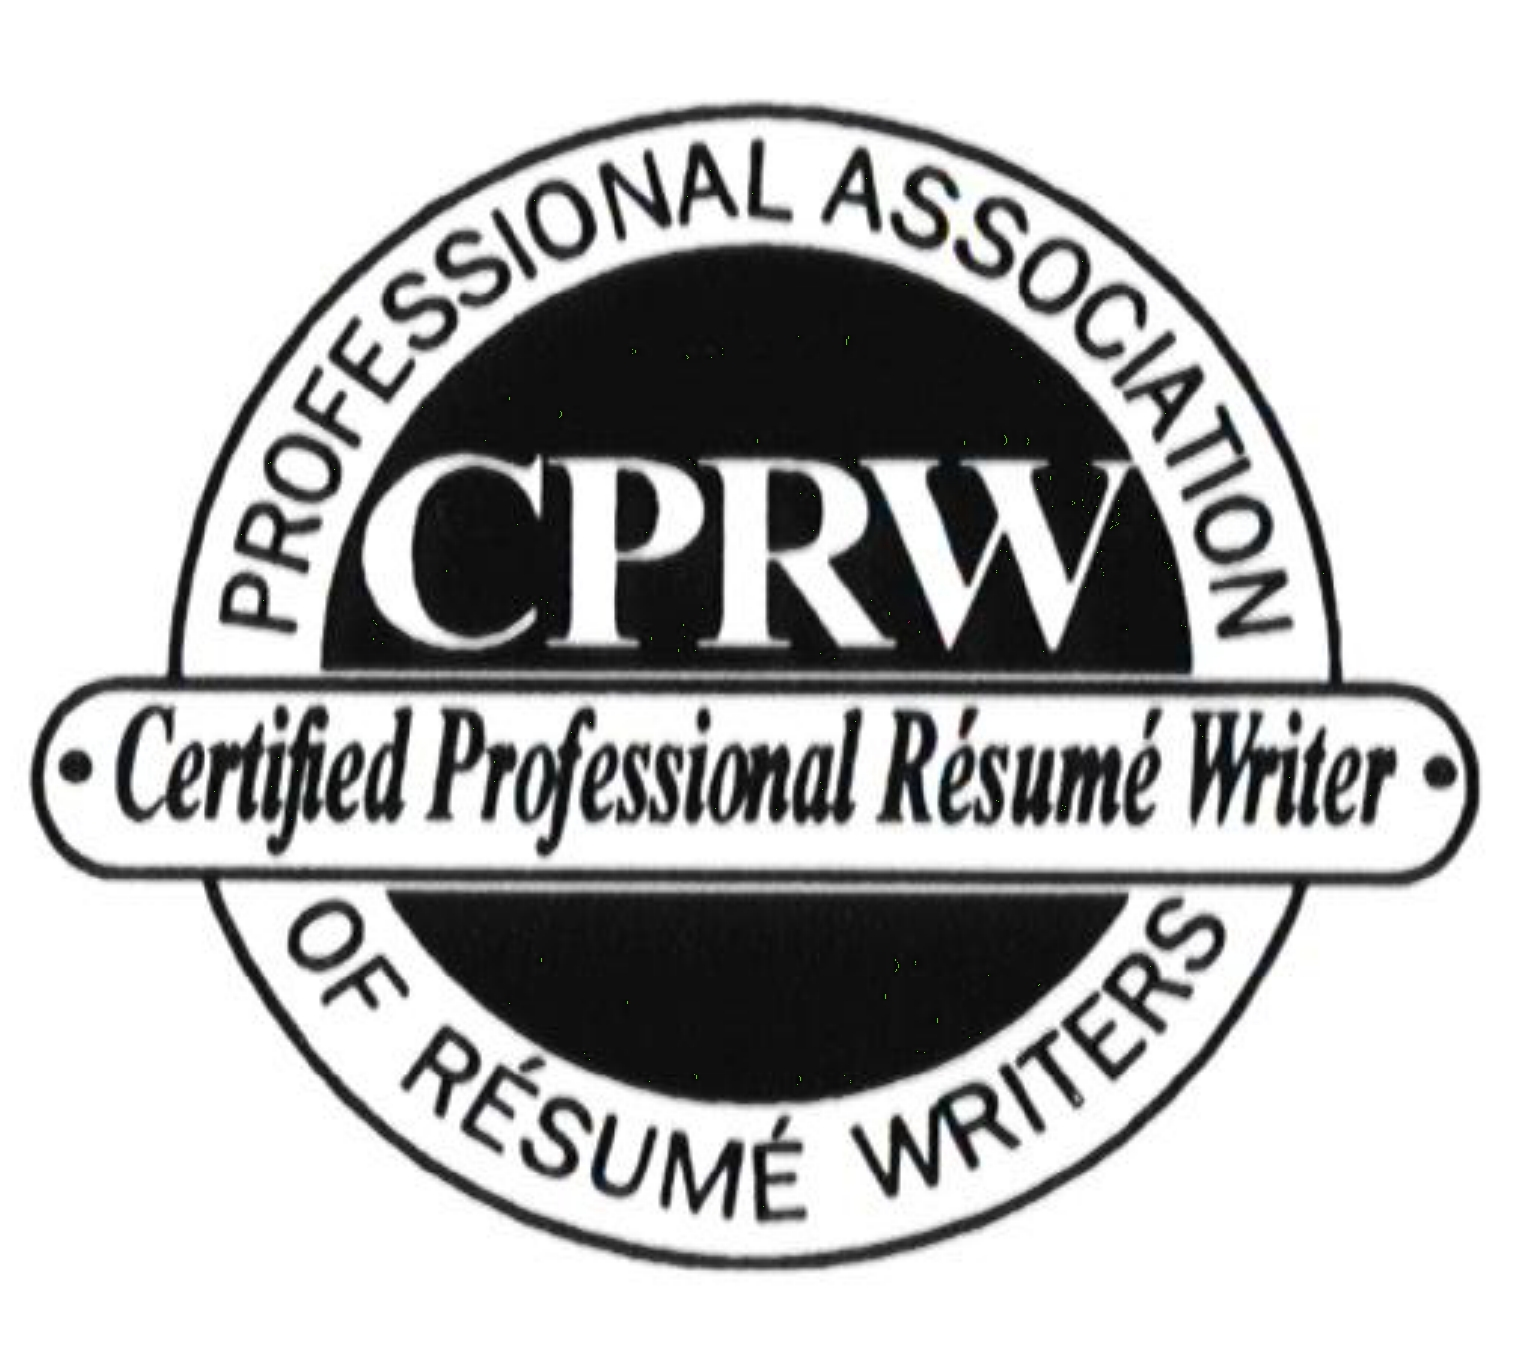 resume Resume Services Near Me certified federal resume writing service diane hudson cprw professional writer